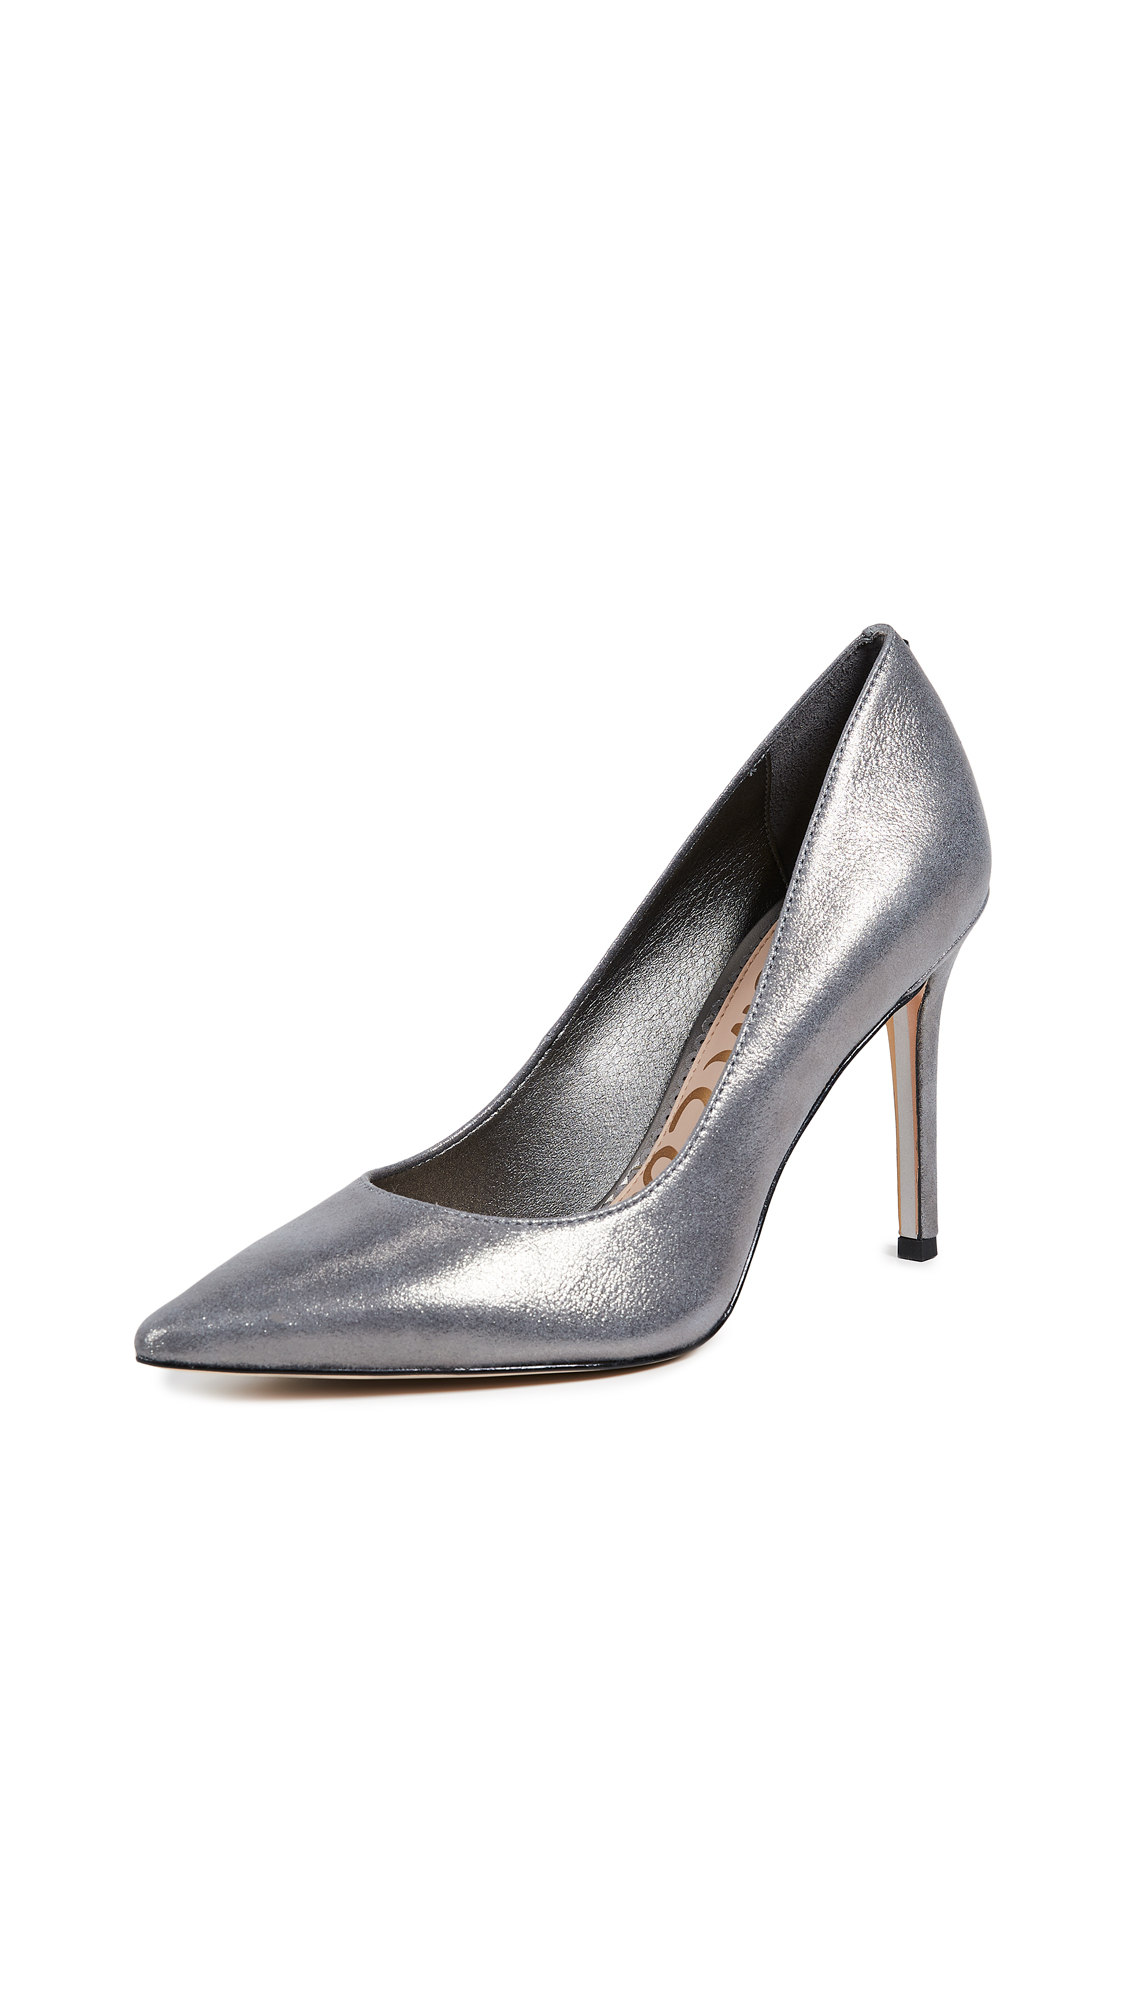 Sam Edelman Hazel Pumps - Dark Pewter